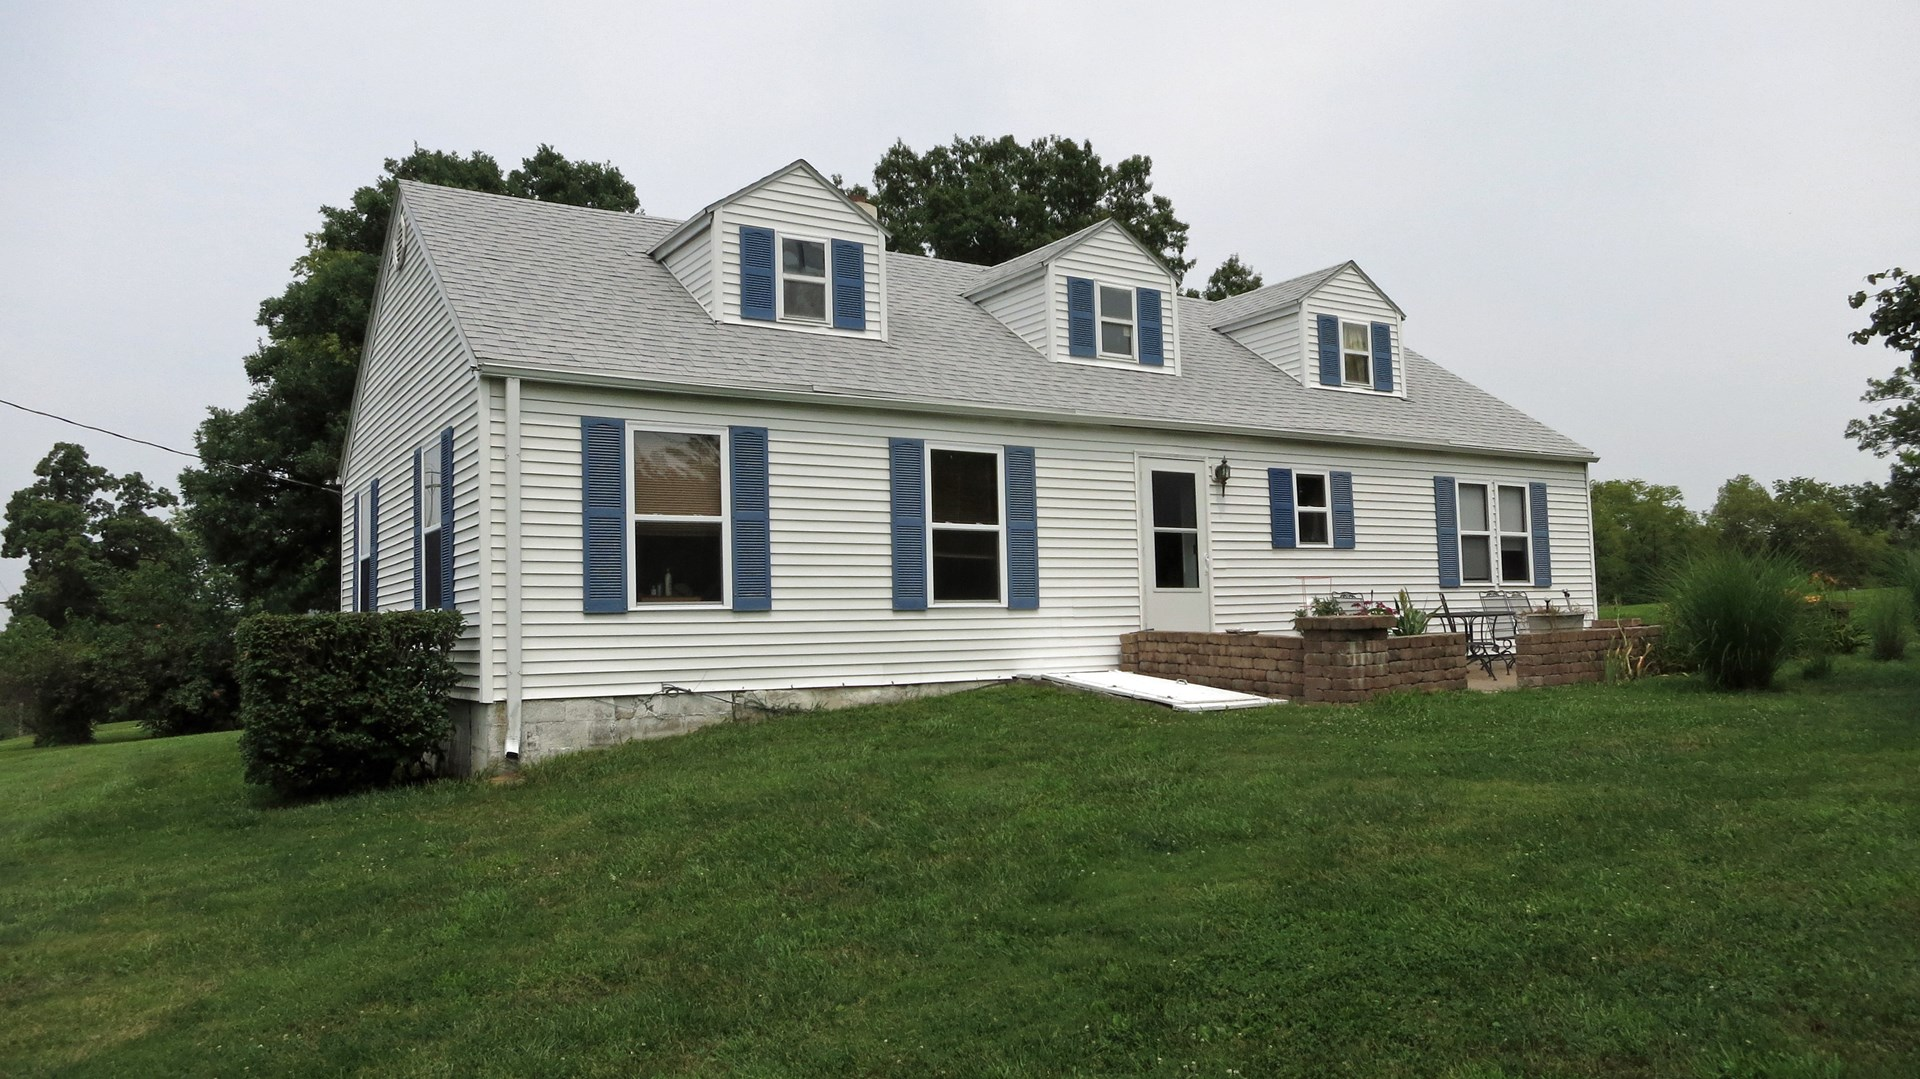 For Sale 3 Bedroom House in Bethany